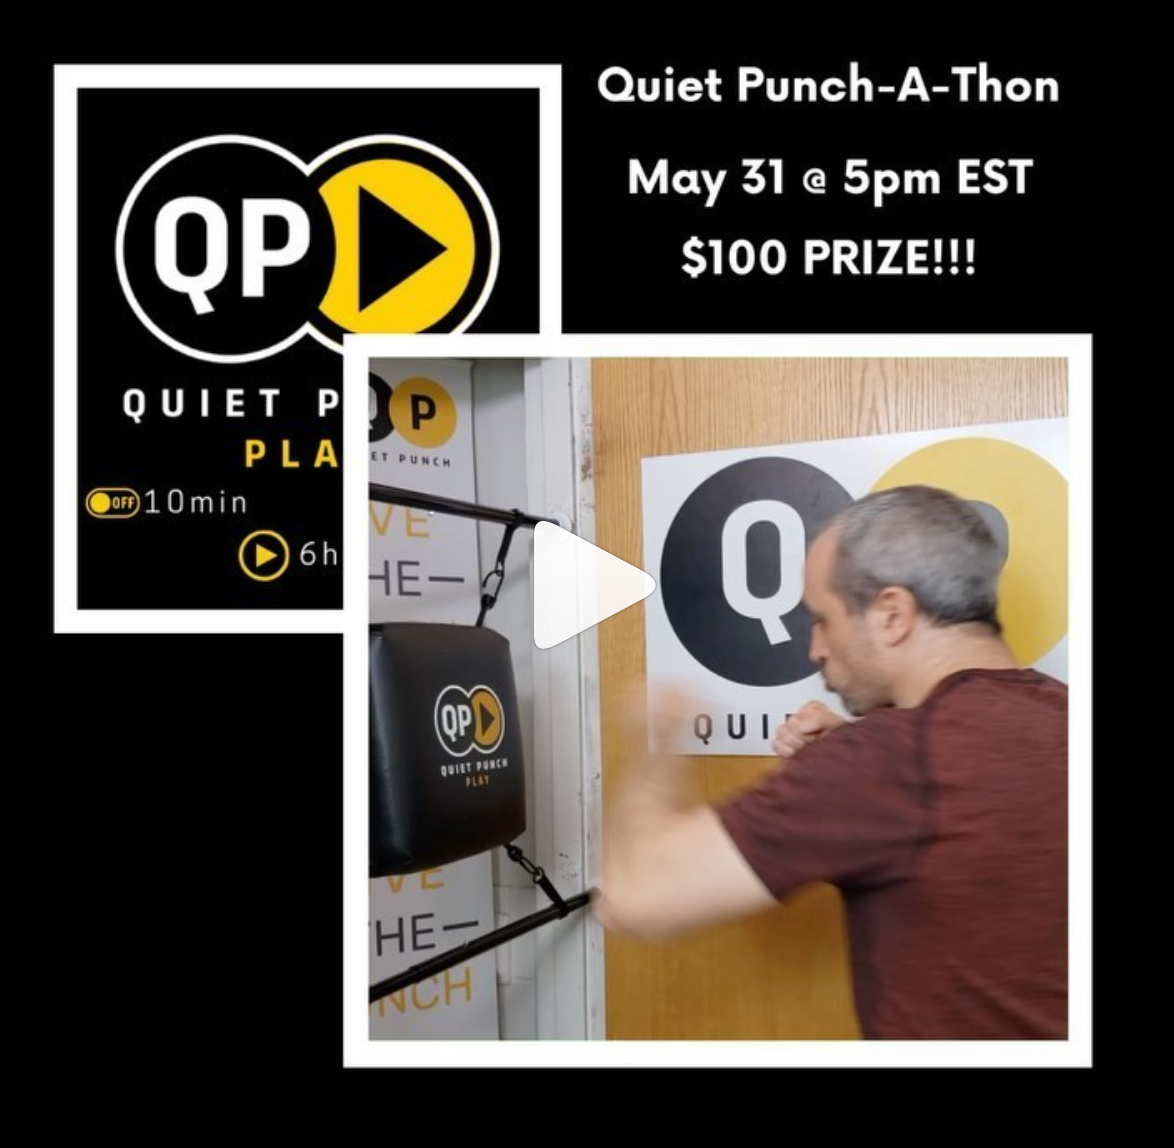 Quiet Punch-A-Thon